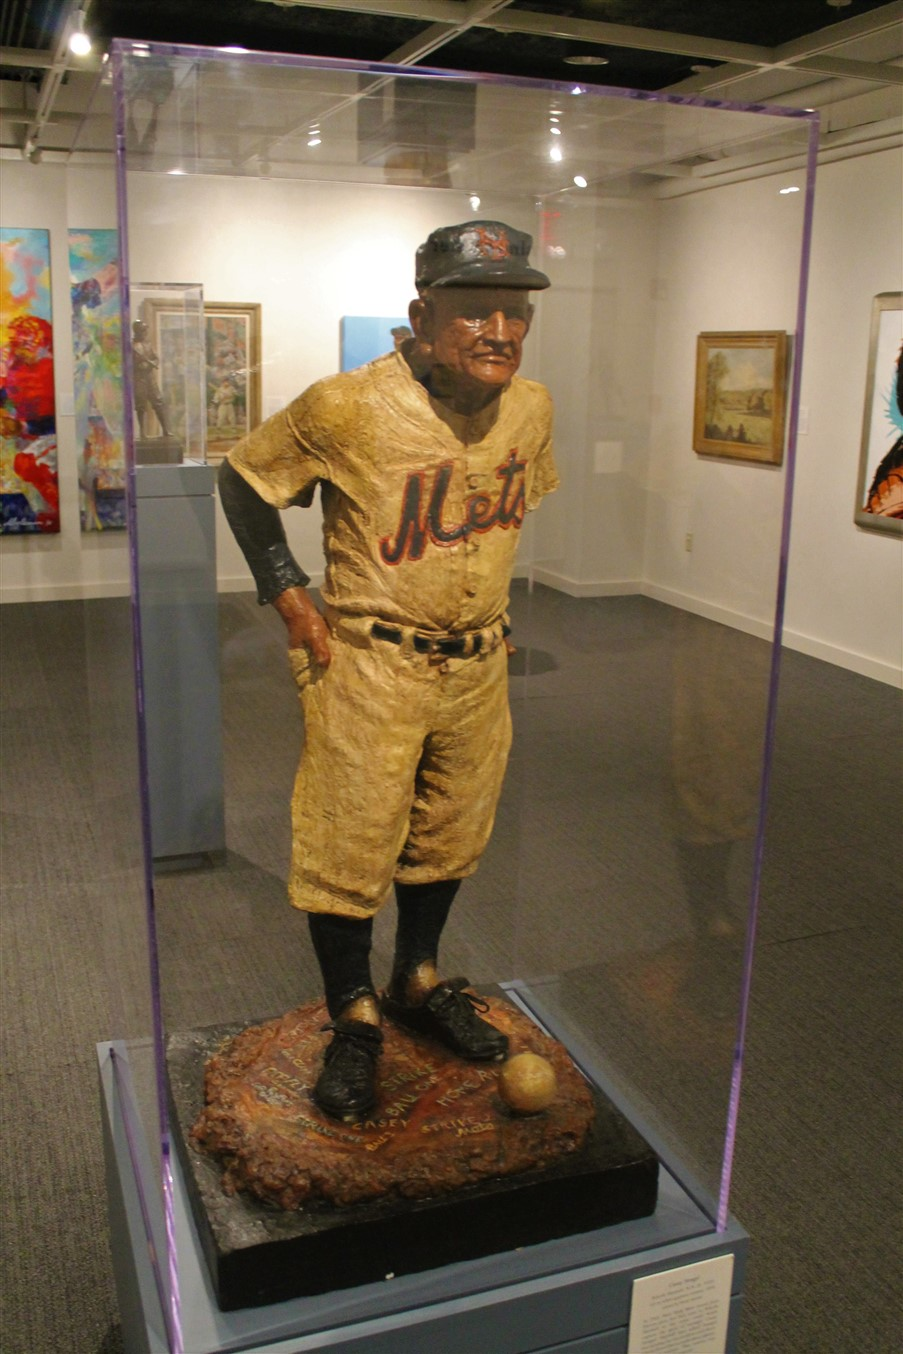 2012 08 24 63 Baseball Hall of Fame.jpg